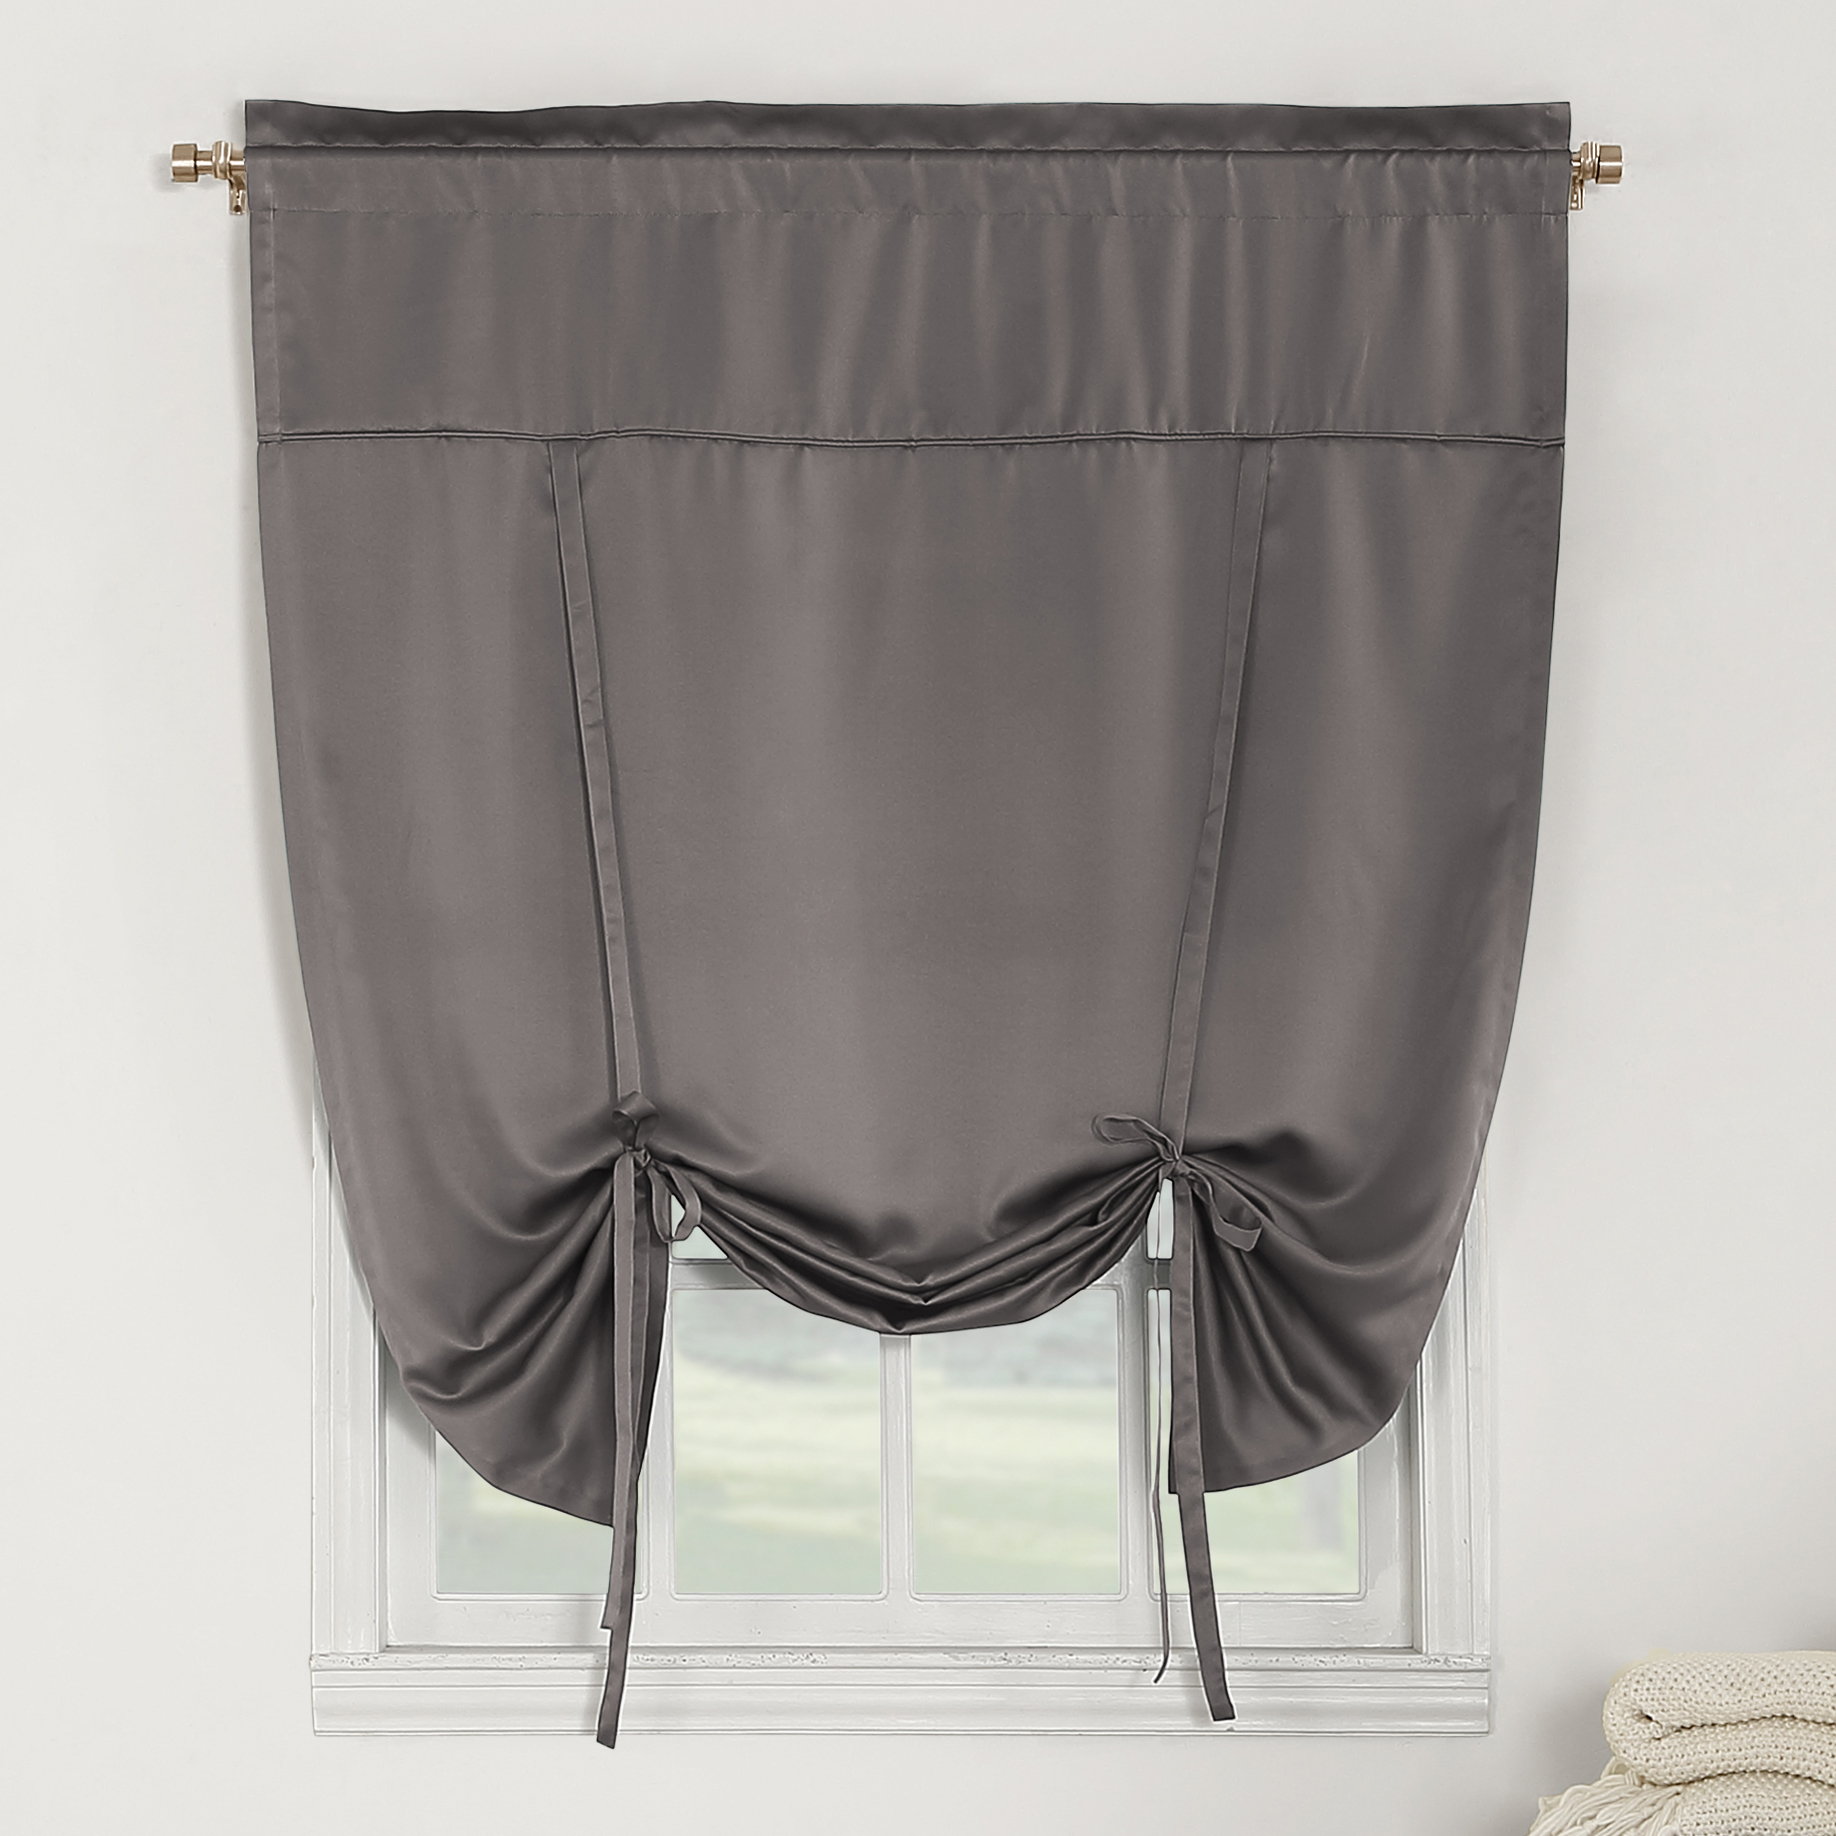 Sun Zero Bartlett Room-Darkening Tie-Up Shade